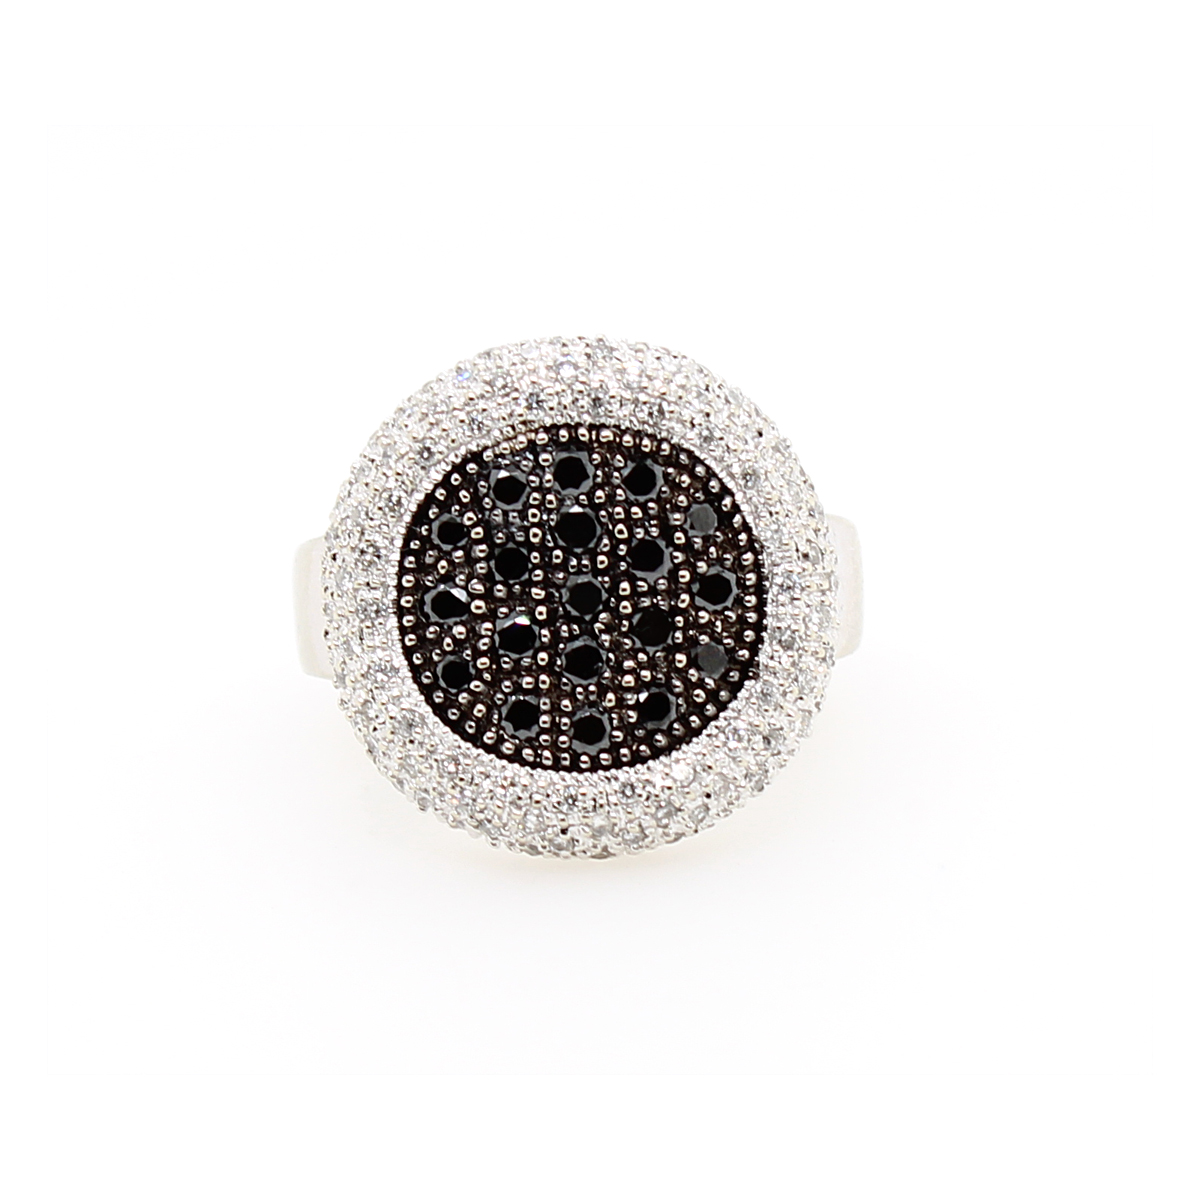 Vintage 14 Karat White Gold Black and White Diamond Pave Ring